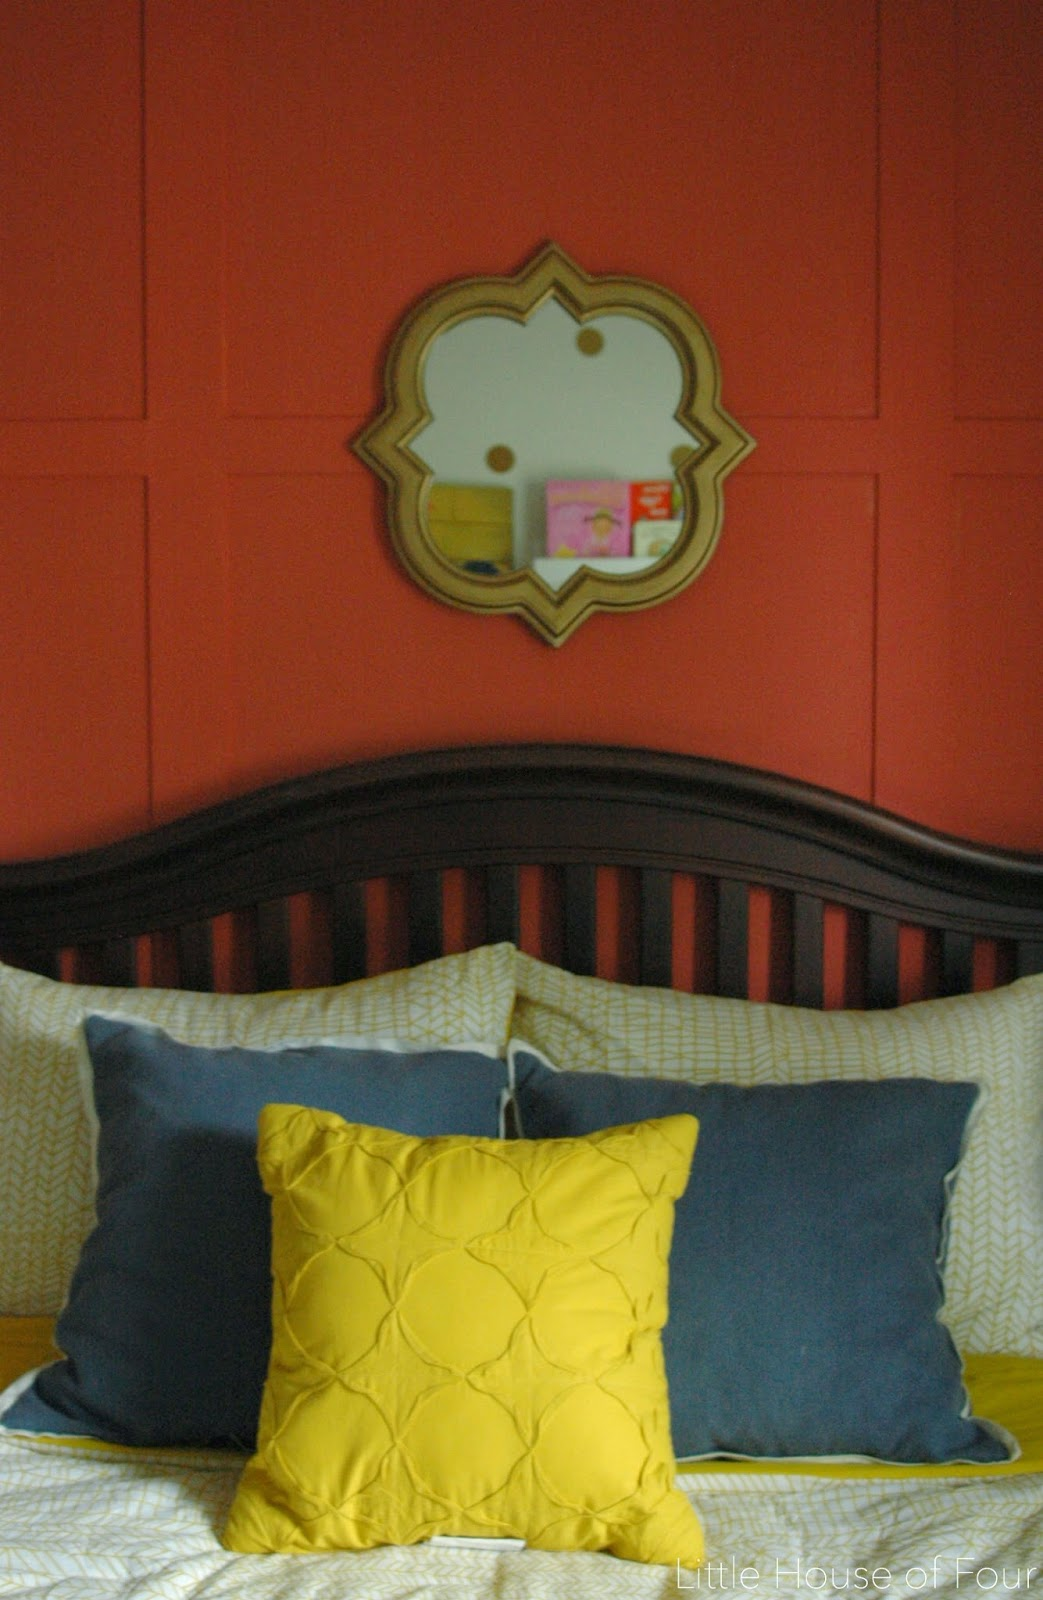 Blue and yellow pillows on bed